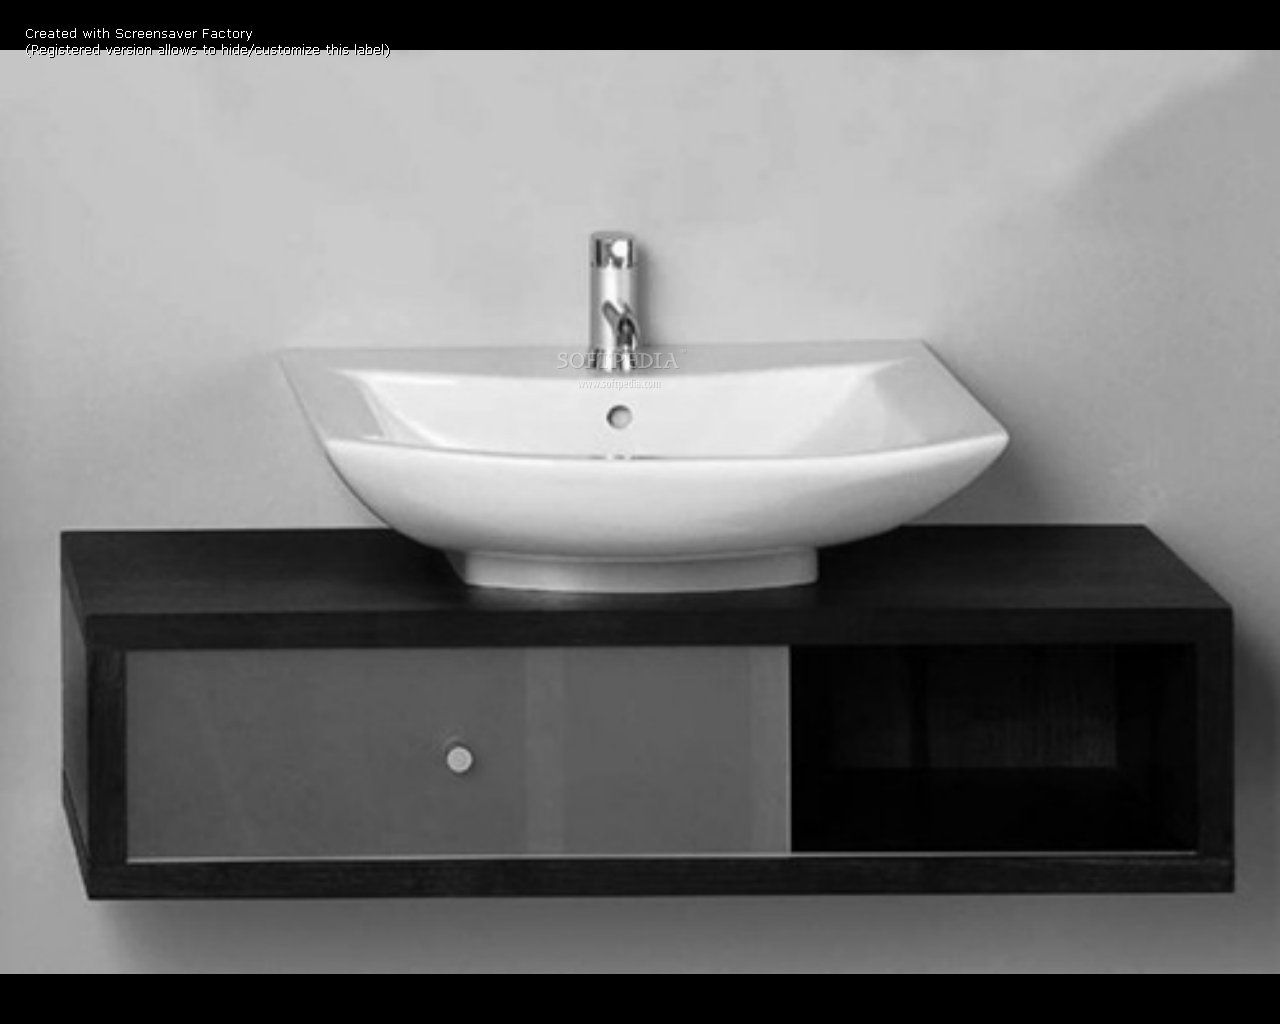 Tiny Bathroom Sinks Small Sink Screenshot 1 This Is How Your Desktop Will